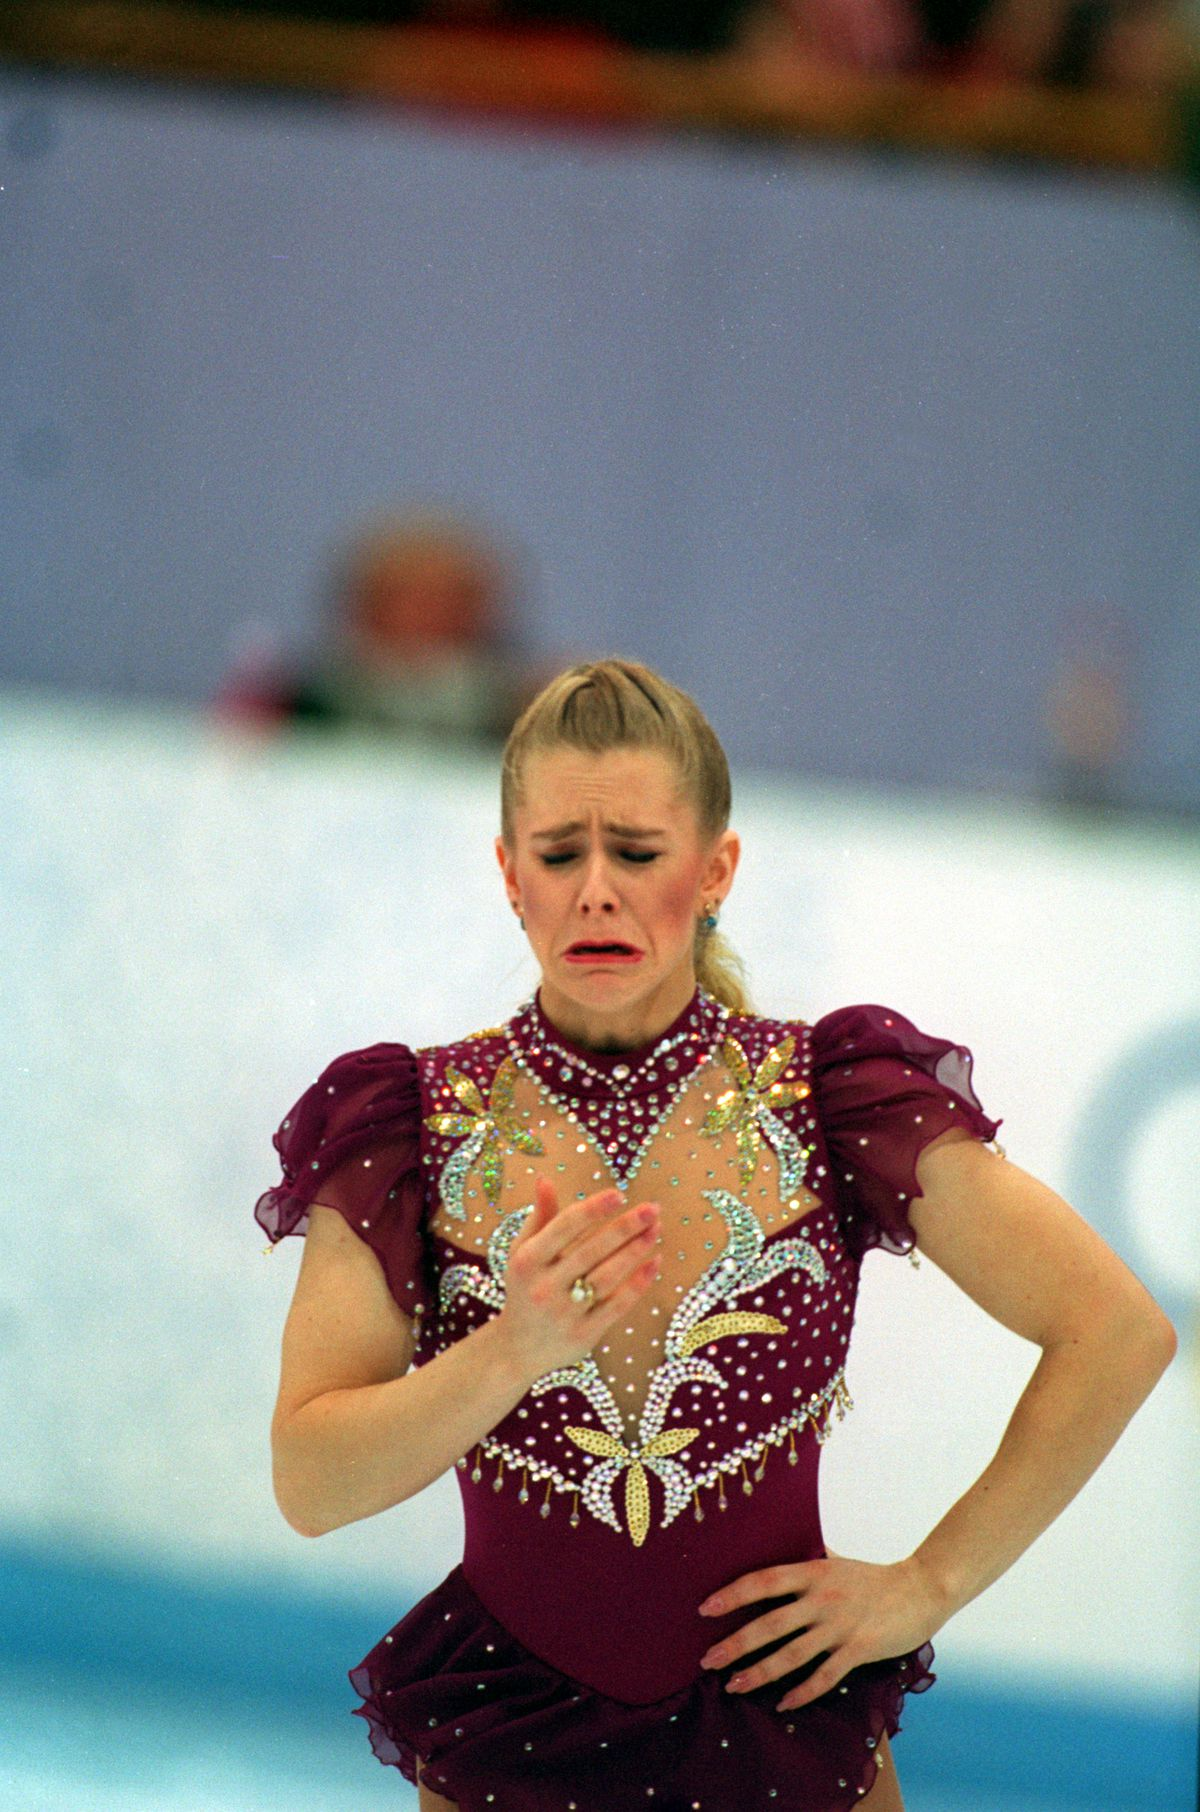 Tonya Harding leaves the ice in tears during the Winter Olympics